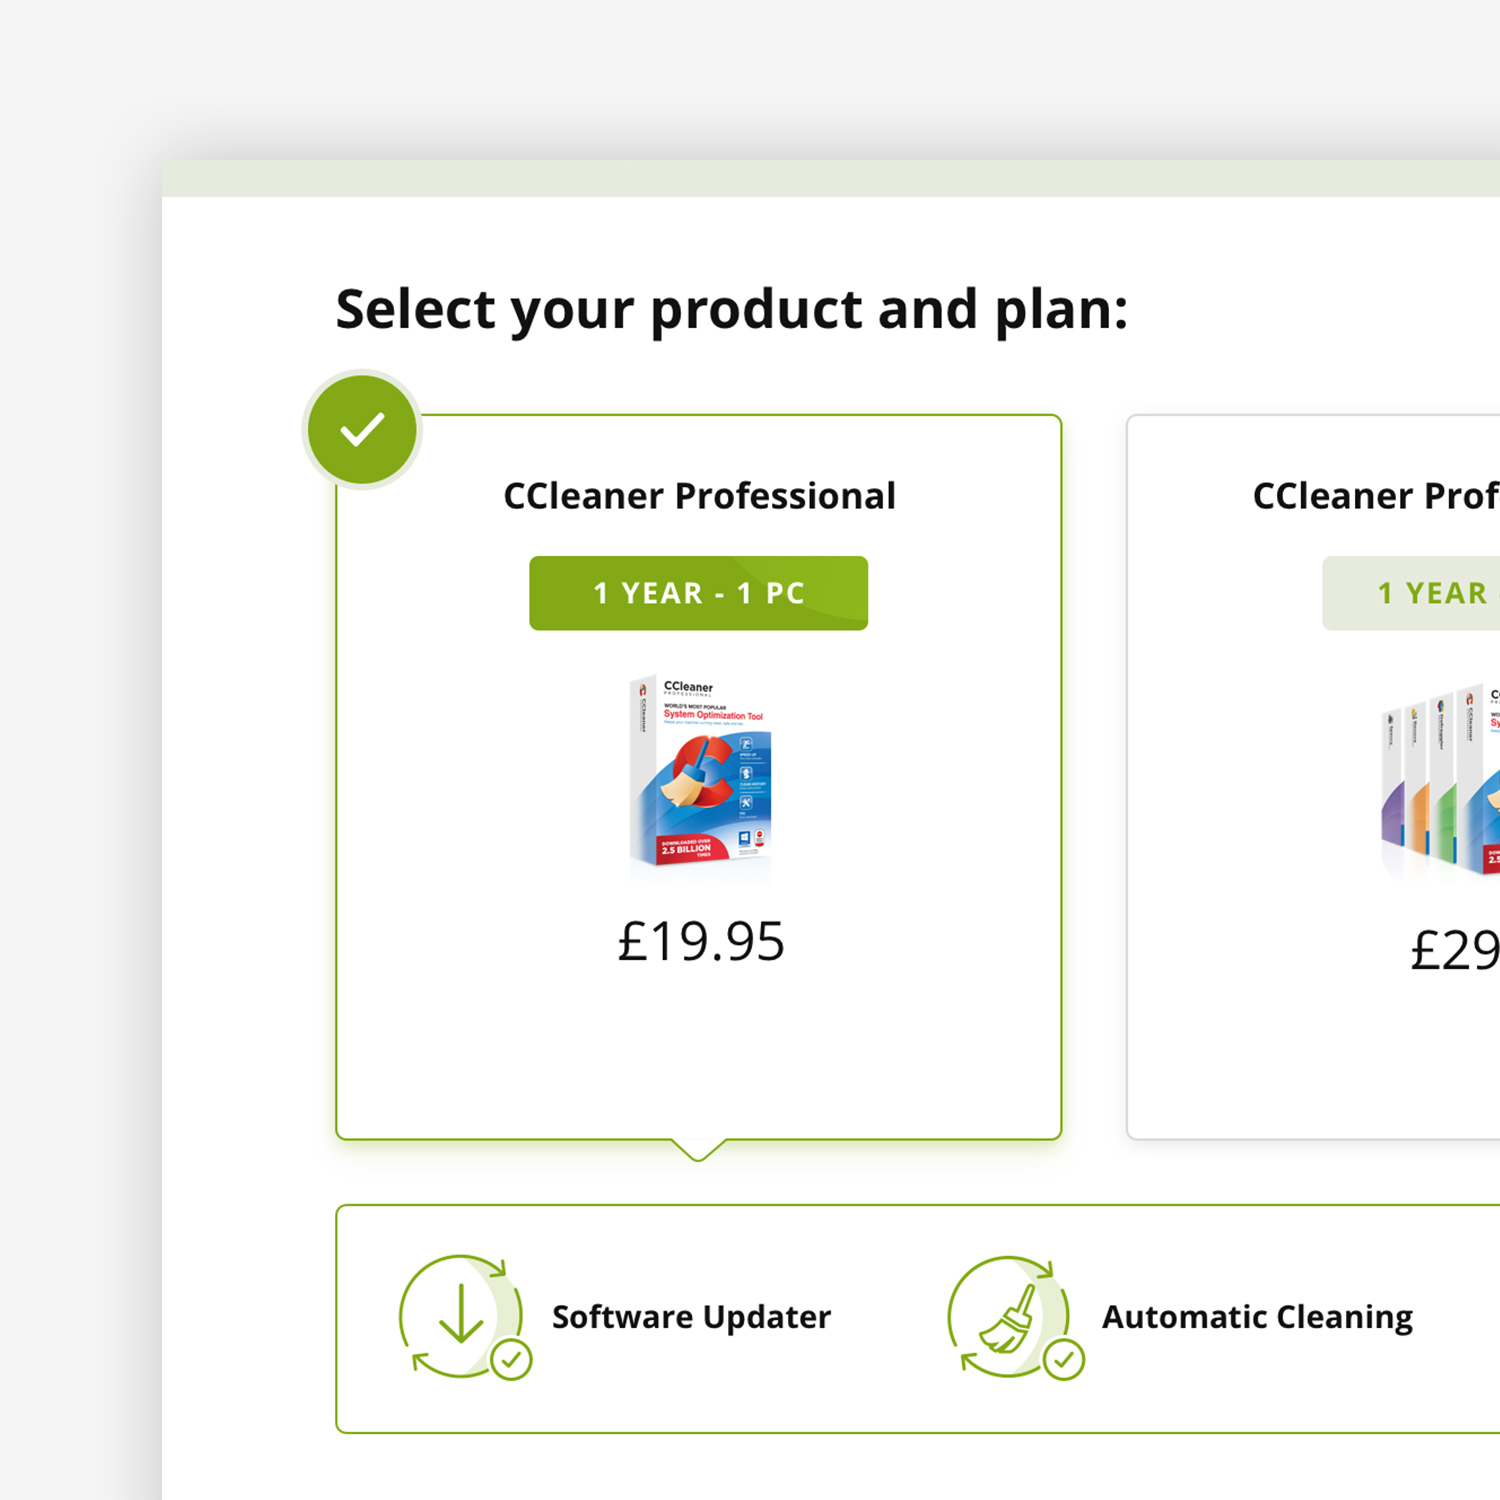 CCleaner Checkout